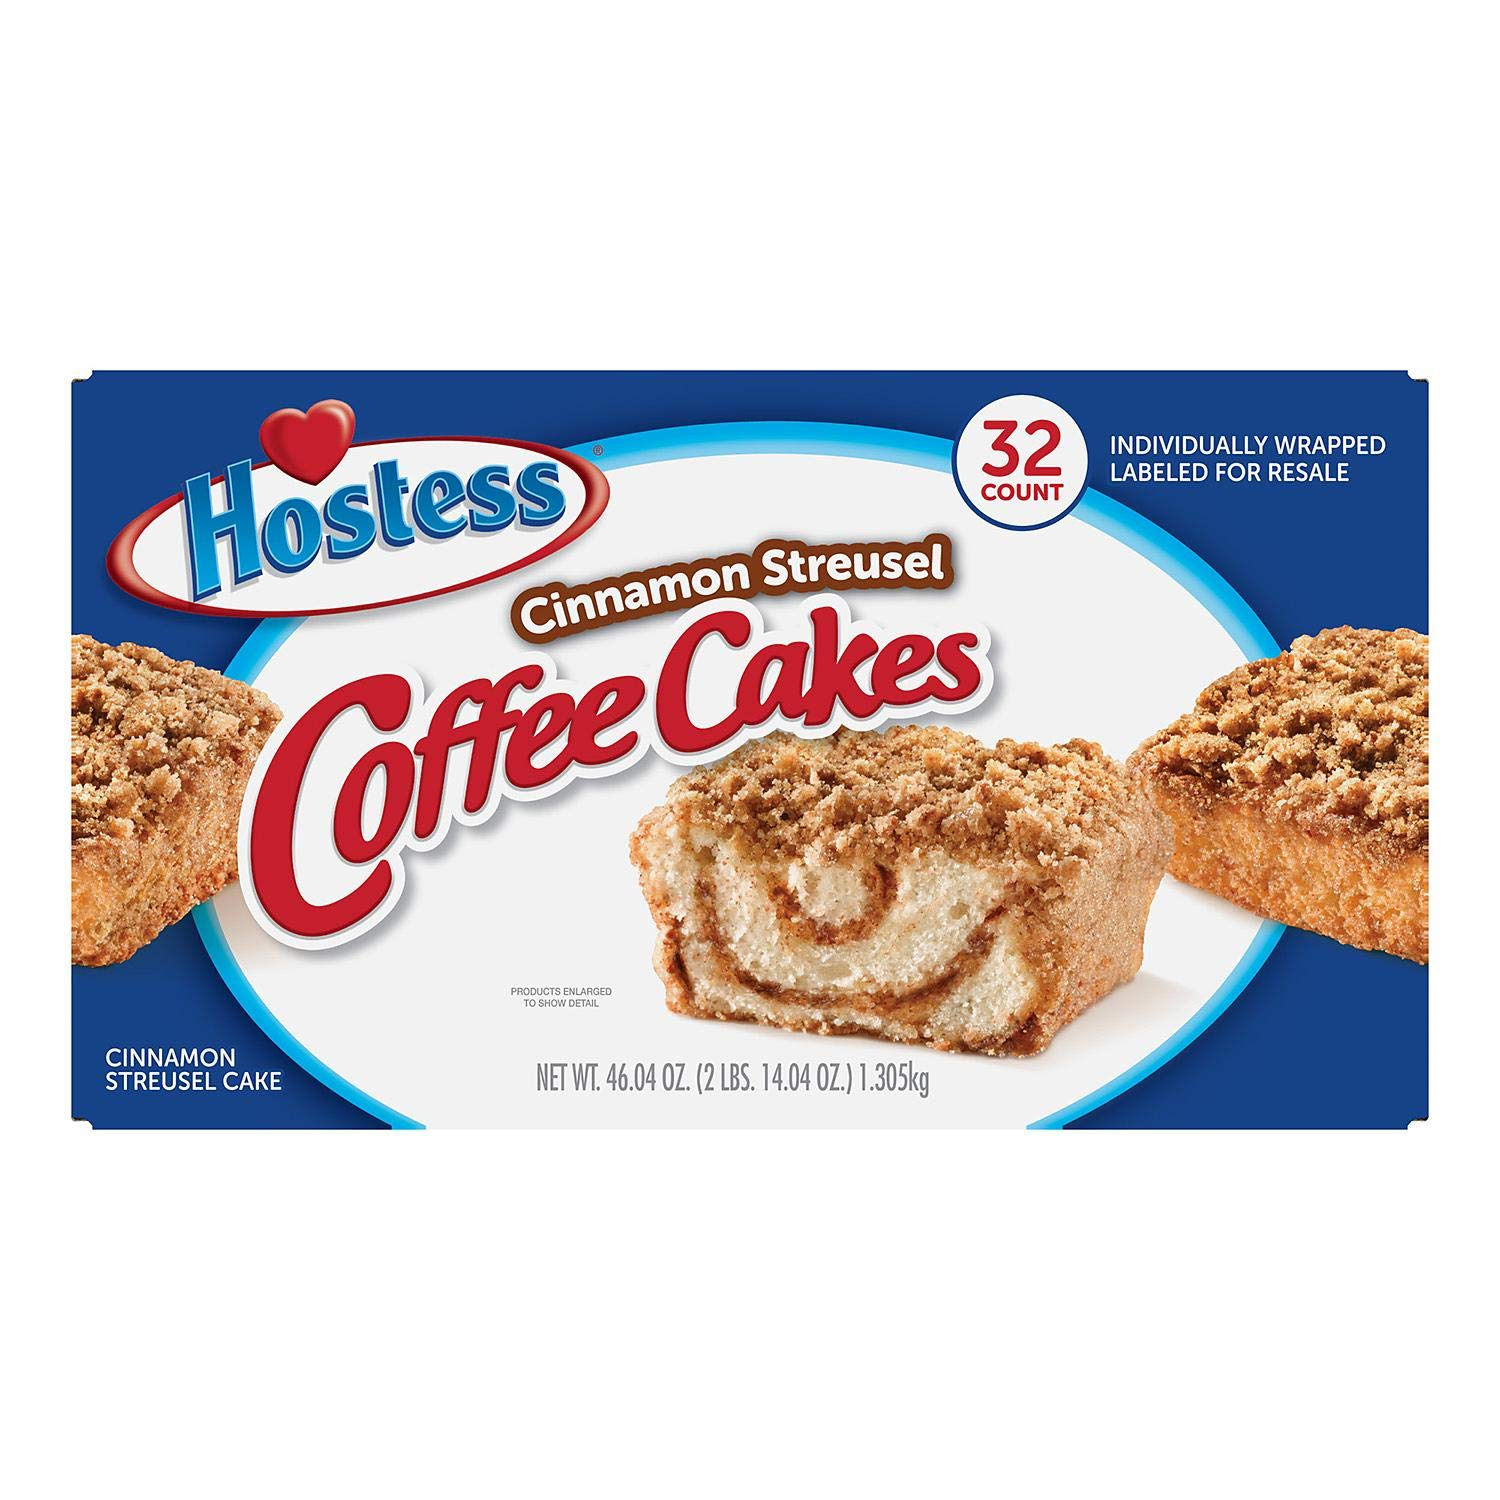 Hostess Cinnamon Streusel Coffee Cakes, 32 count by Hot Deals Warehouse